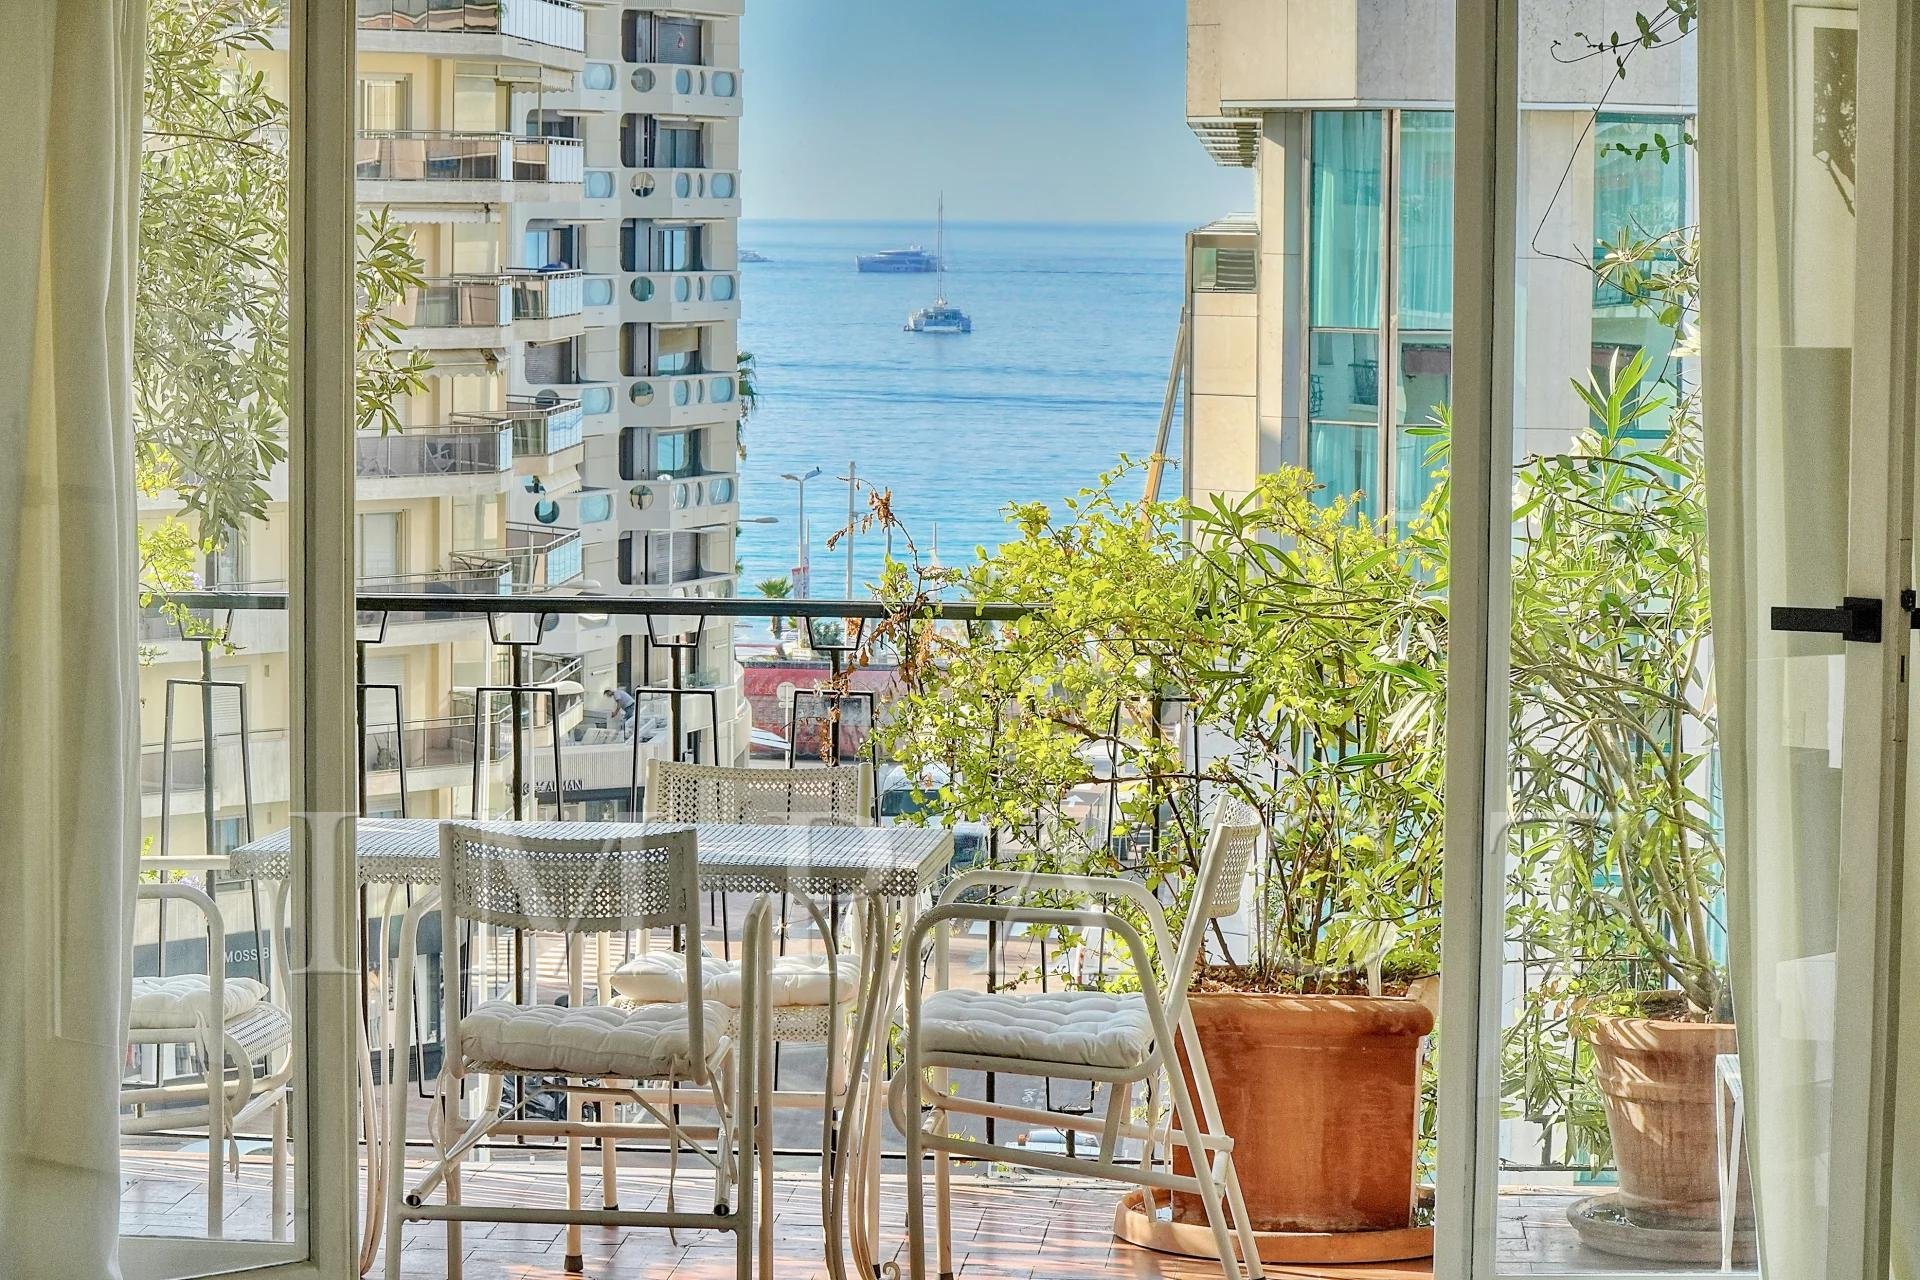 Rear Croisette - Apartment for rent with Sea view